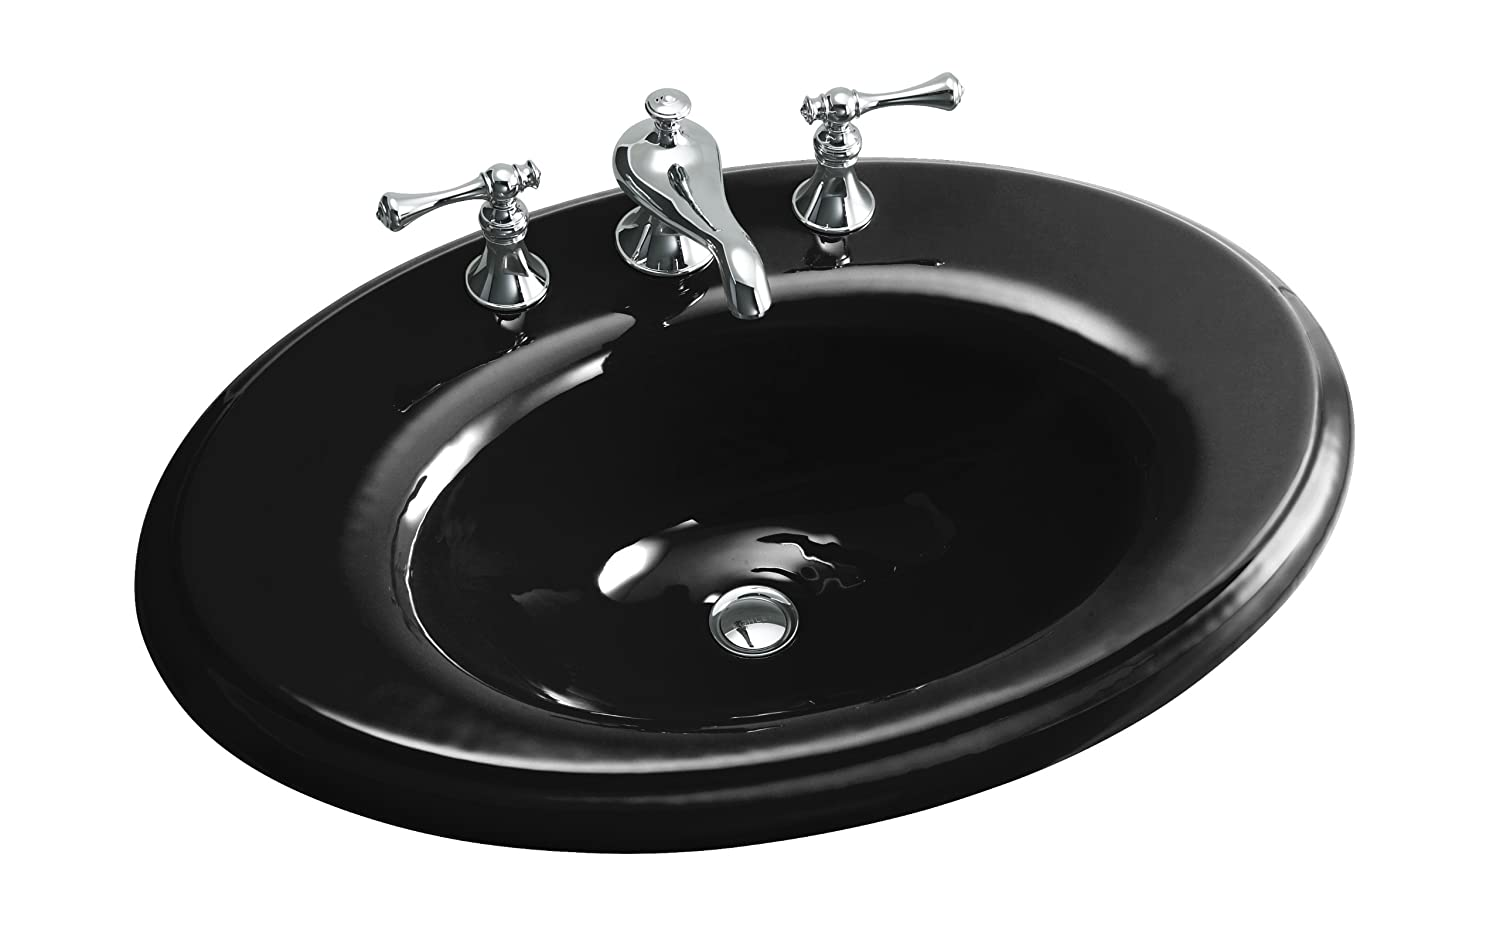 KOHLER K-2950-8-7 Revival Self-Rimming Bathroom Sink with 8\